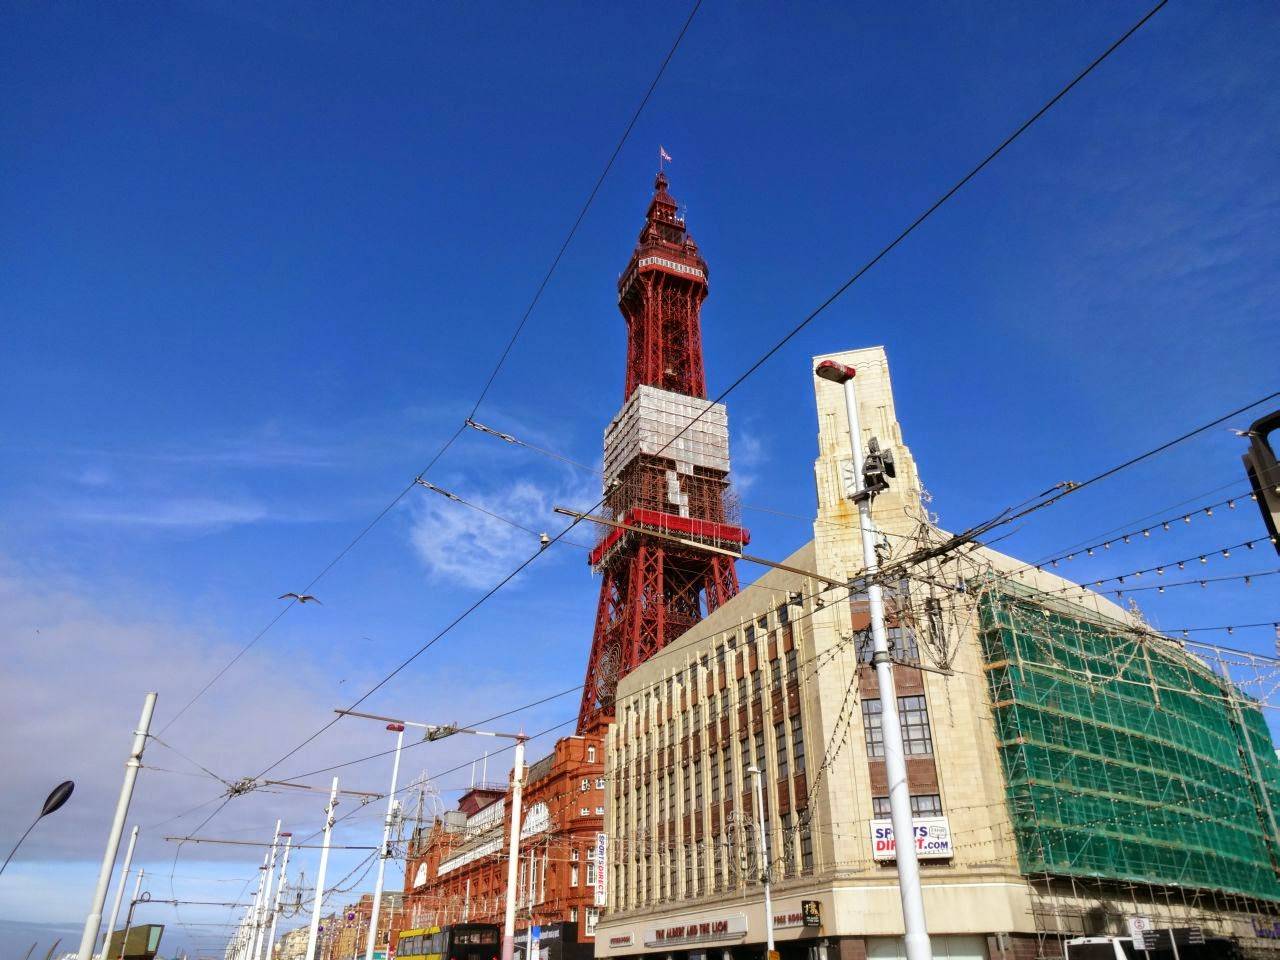 Welcome to Blackpool!